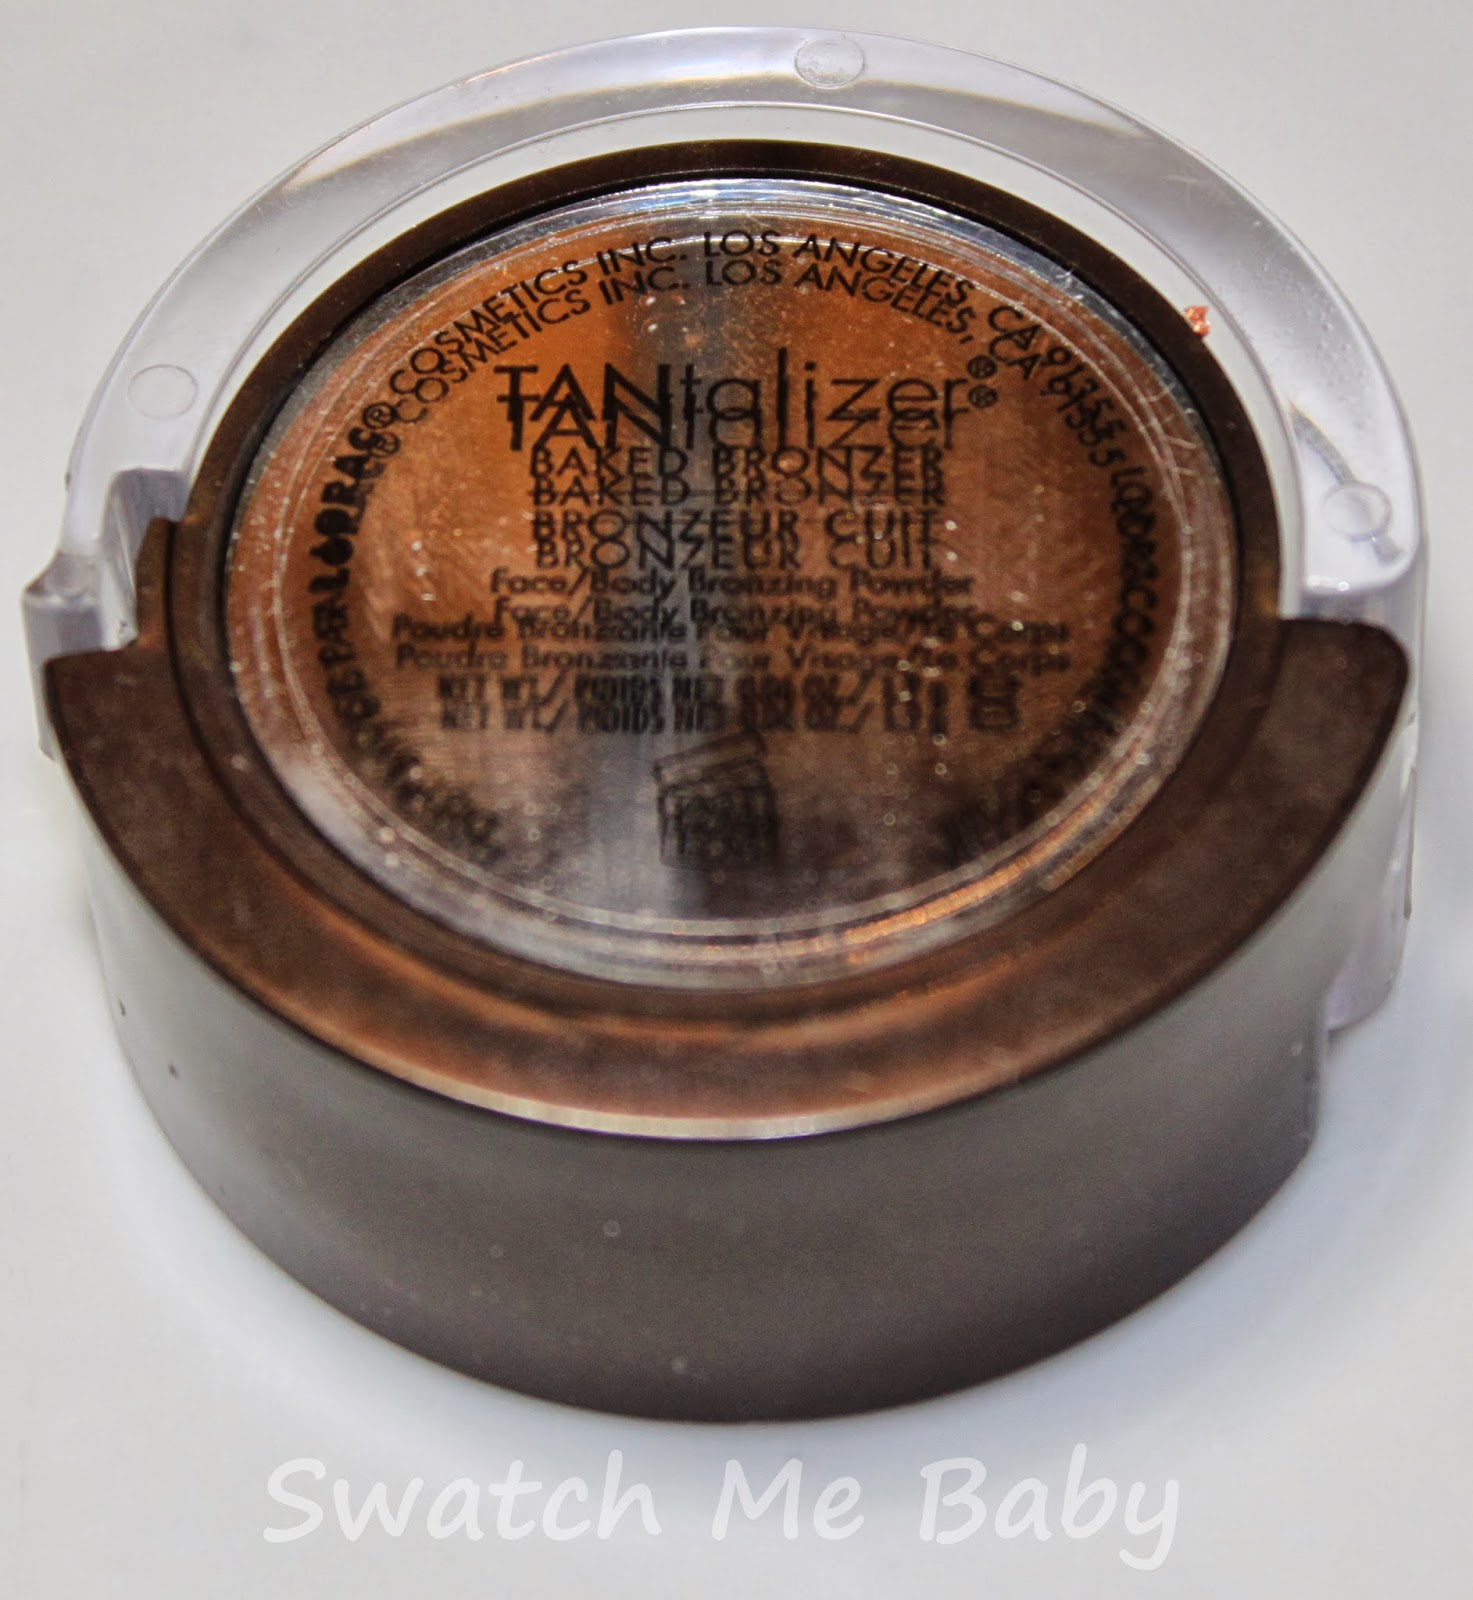 LORAC Travel-Size Tantalizer Baked Bronzer Mirror/Label